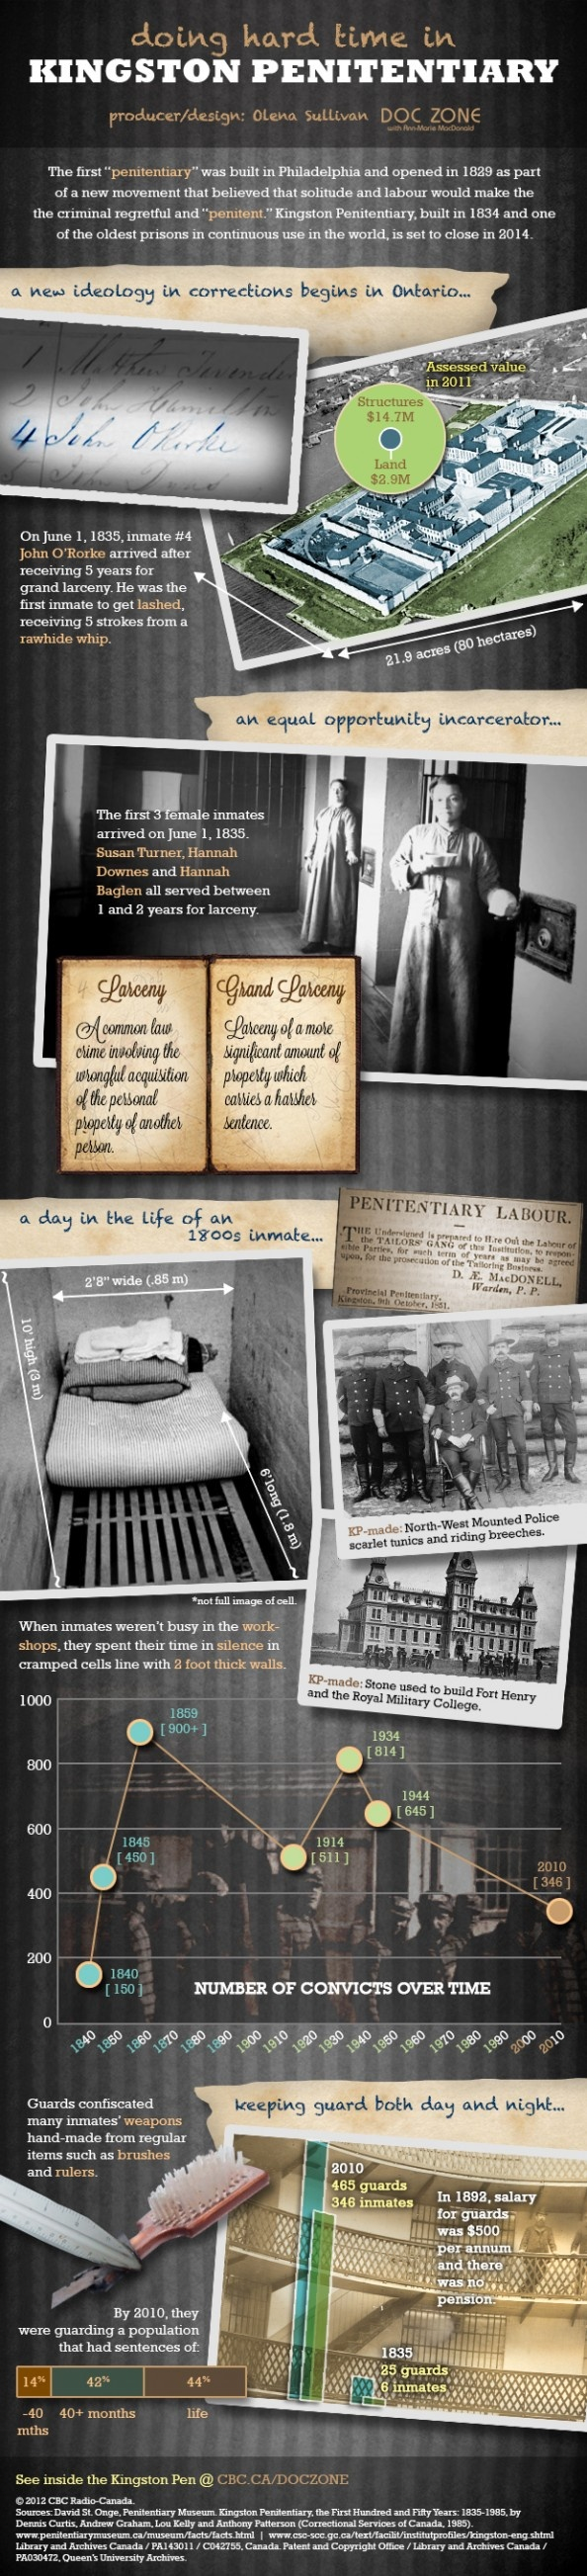 Infographic about the Kingston Penitentiary